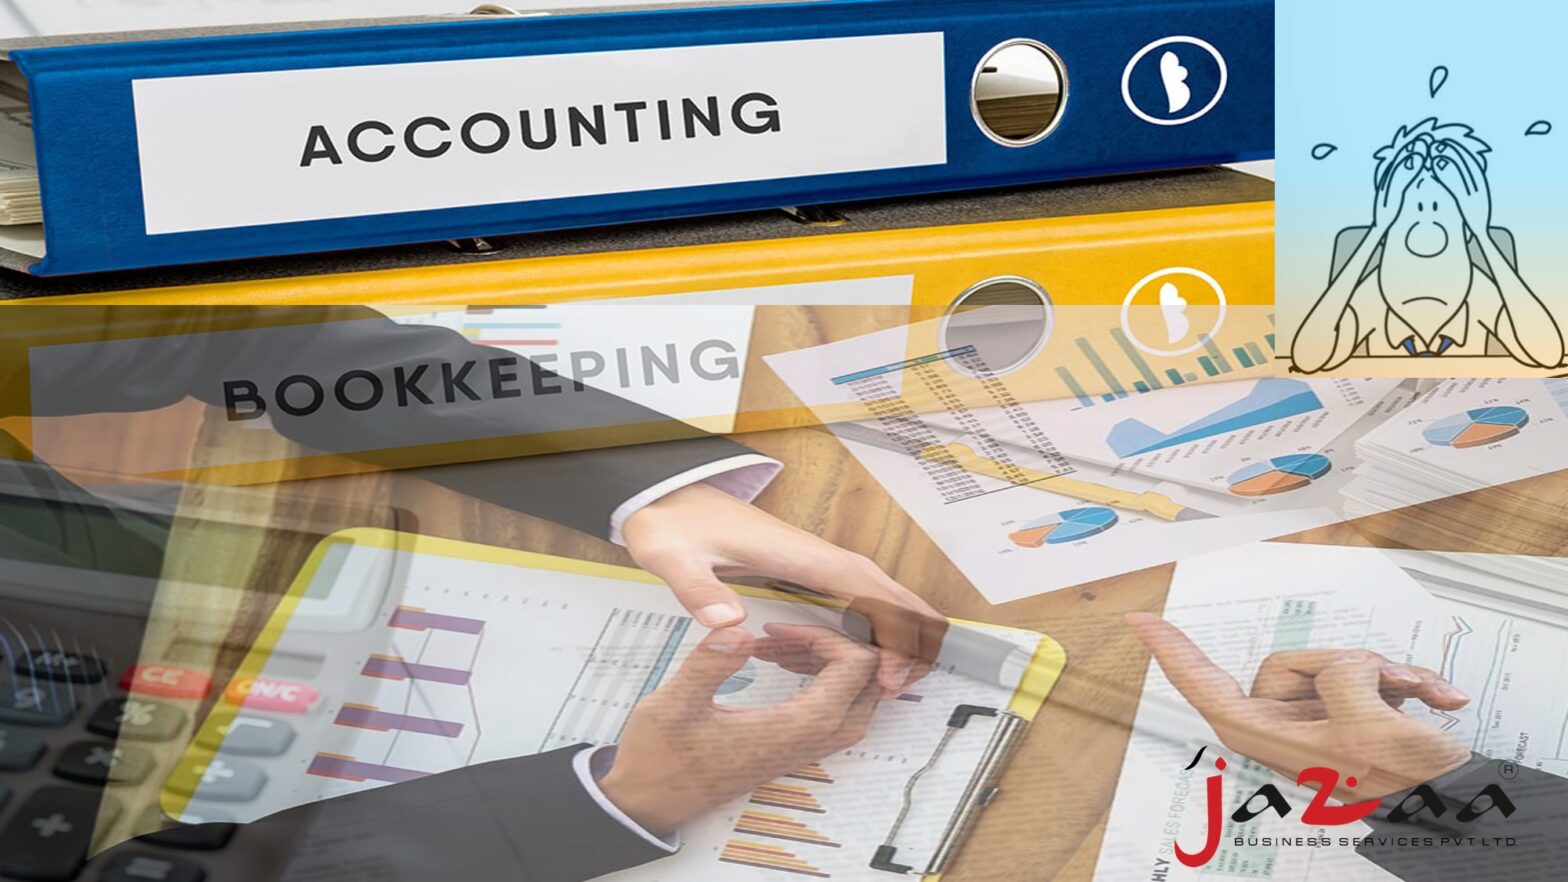 Easy and effective bookkeeping for small businesses!